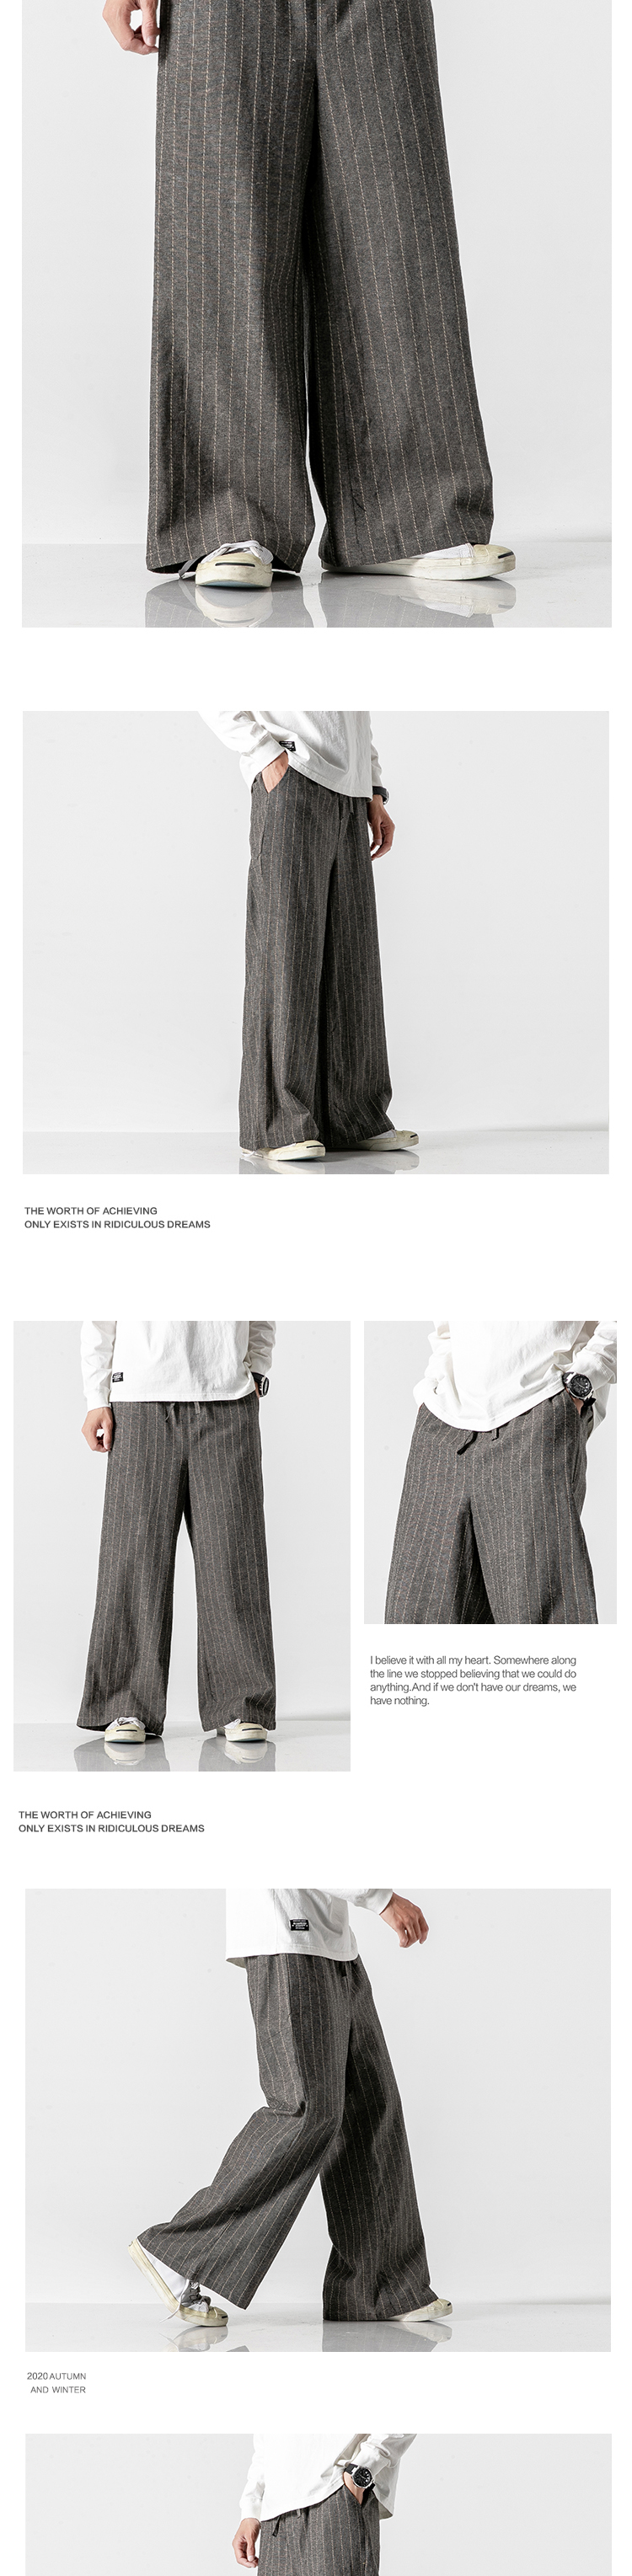 Sinicism Store Men Striped Chinese Style Wide Leg Pants Mens 2020 Japan Style Loose Trousers Male Oversize Vintage Casual Pants 31